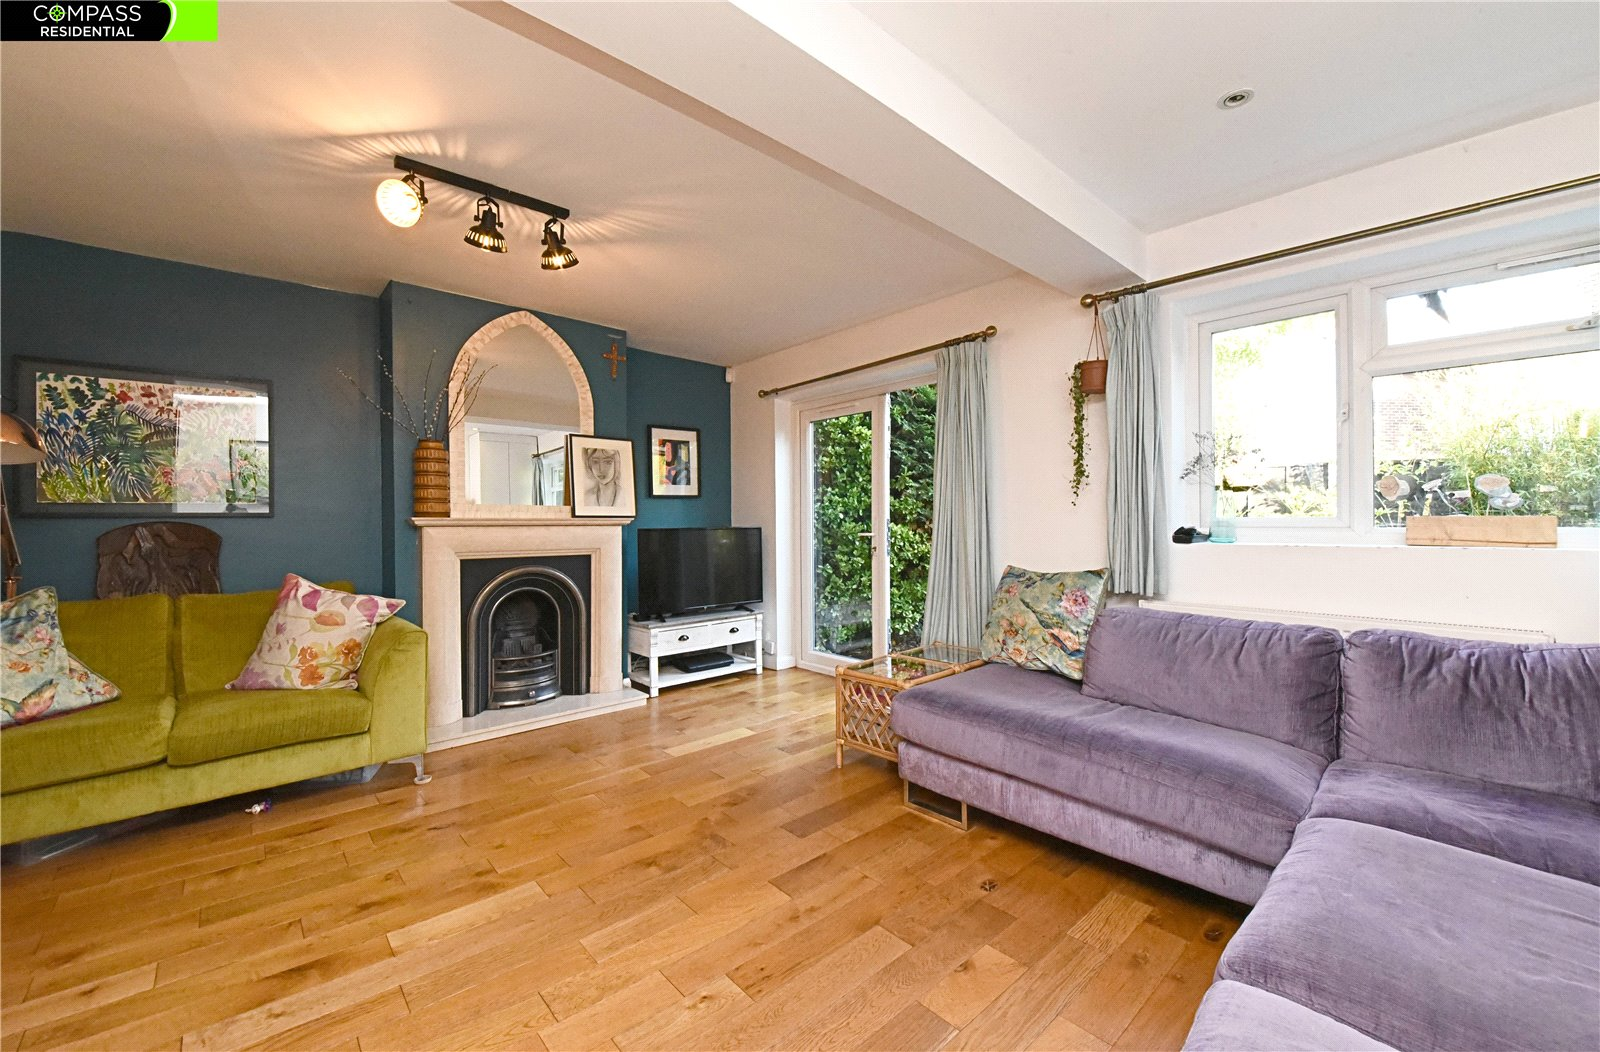 4 bed house for sale in Whetstone, N20 0HJ  - Property Image 2